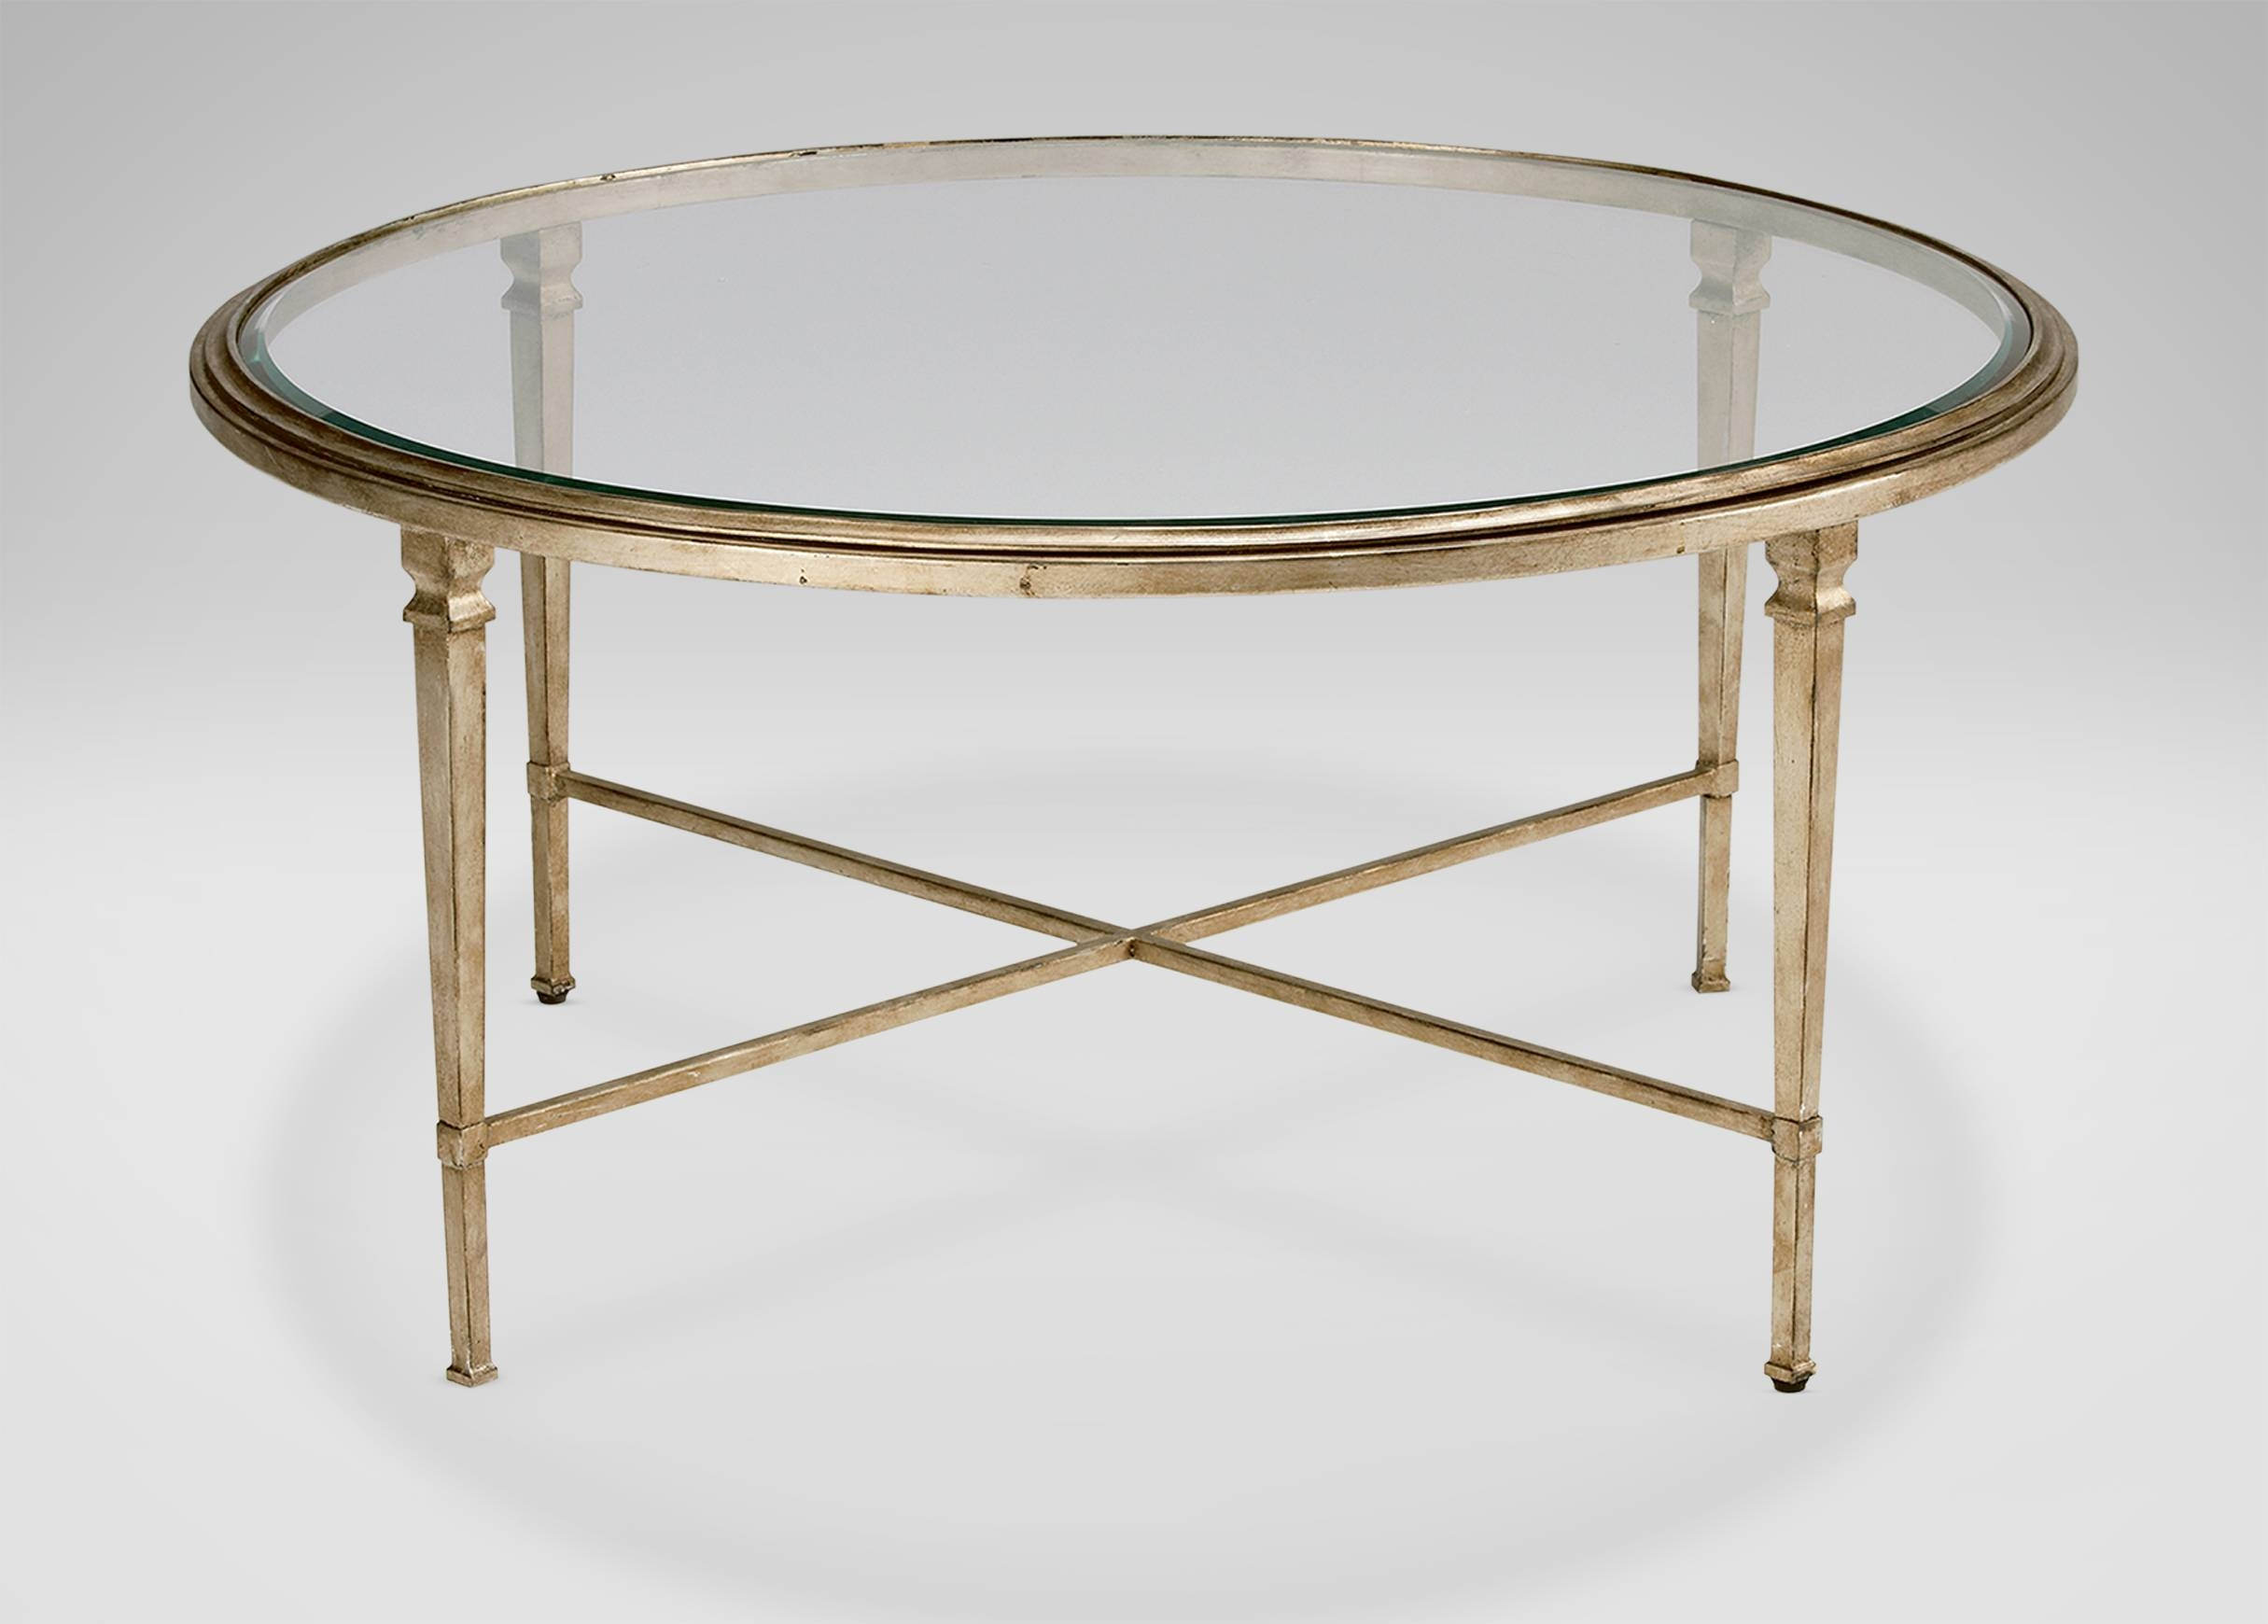 Heron Round Coffee Table | Coffee Tables pertaining to Round Coffee Tables (Image 15 of 30)